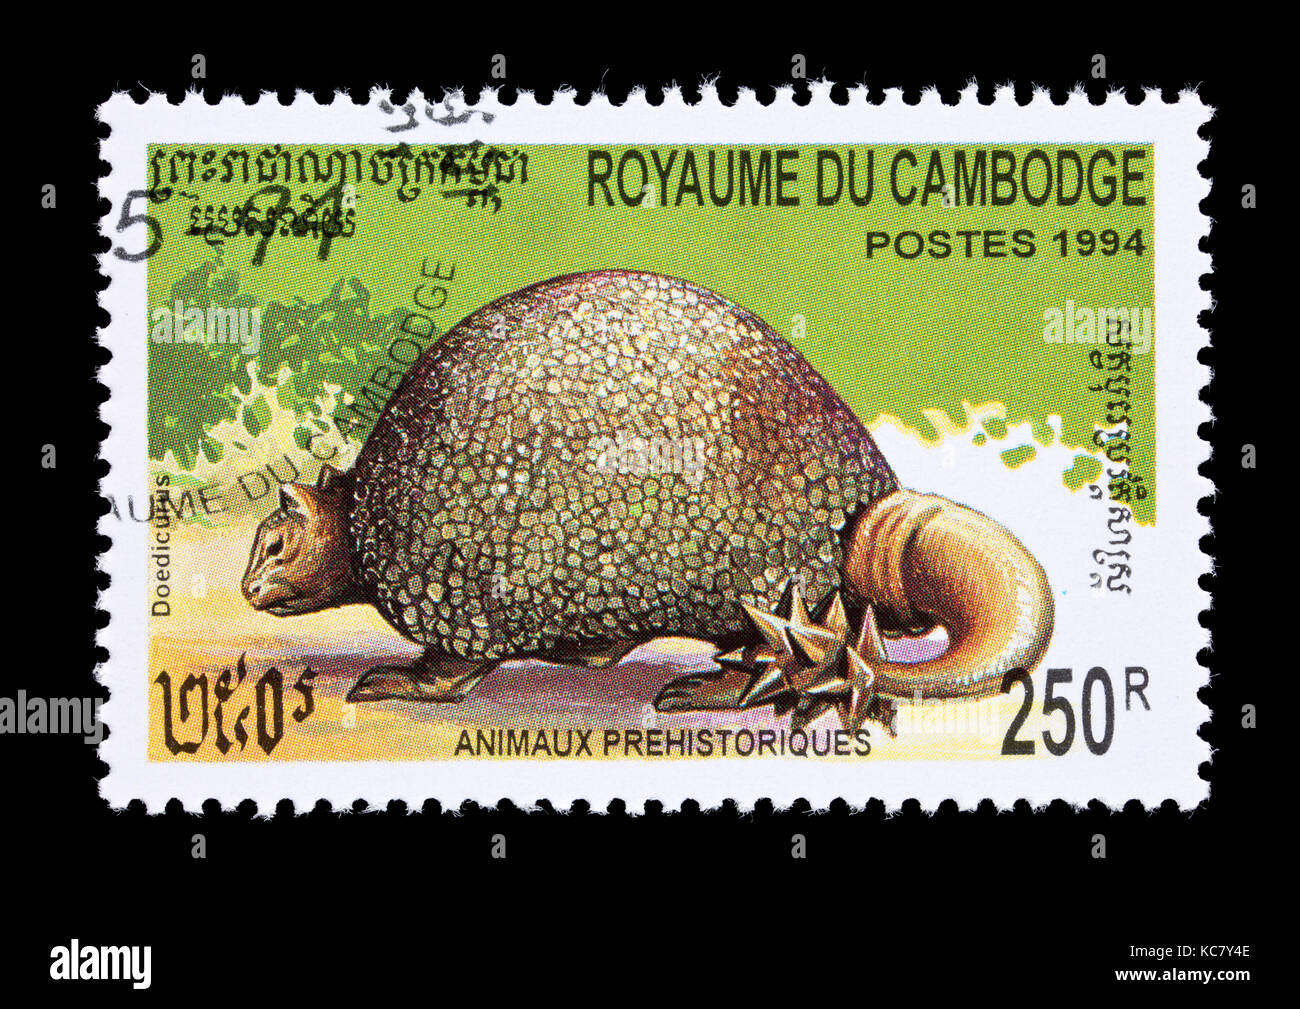 Postage stamp from Cambodia depicting a doedicurus, prehistoric extinct mammal. - Stock Image